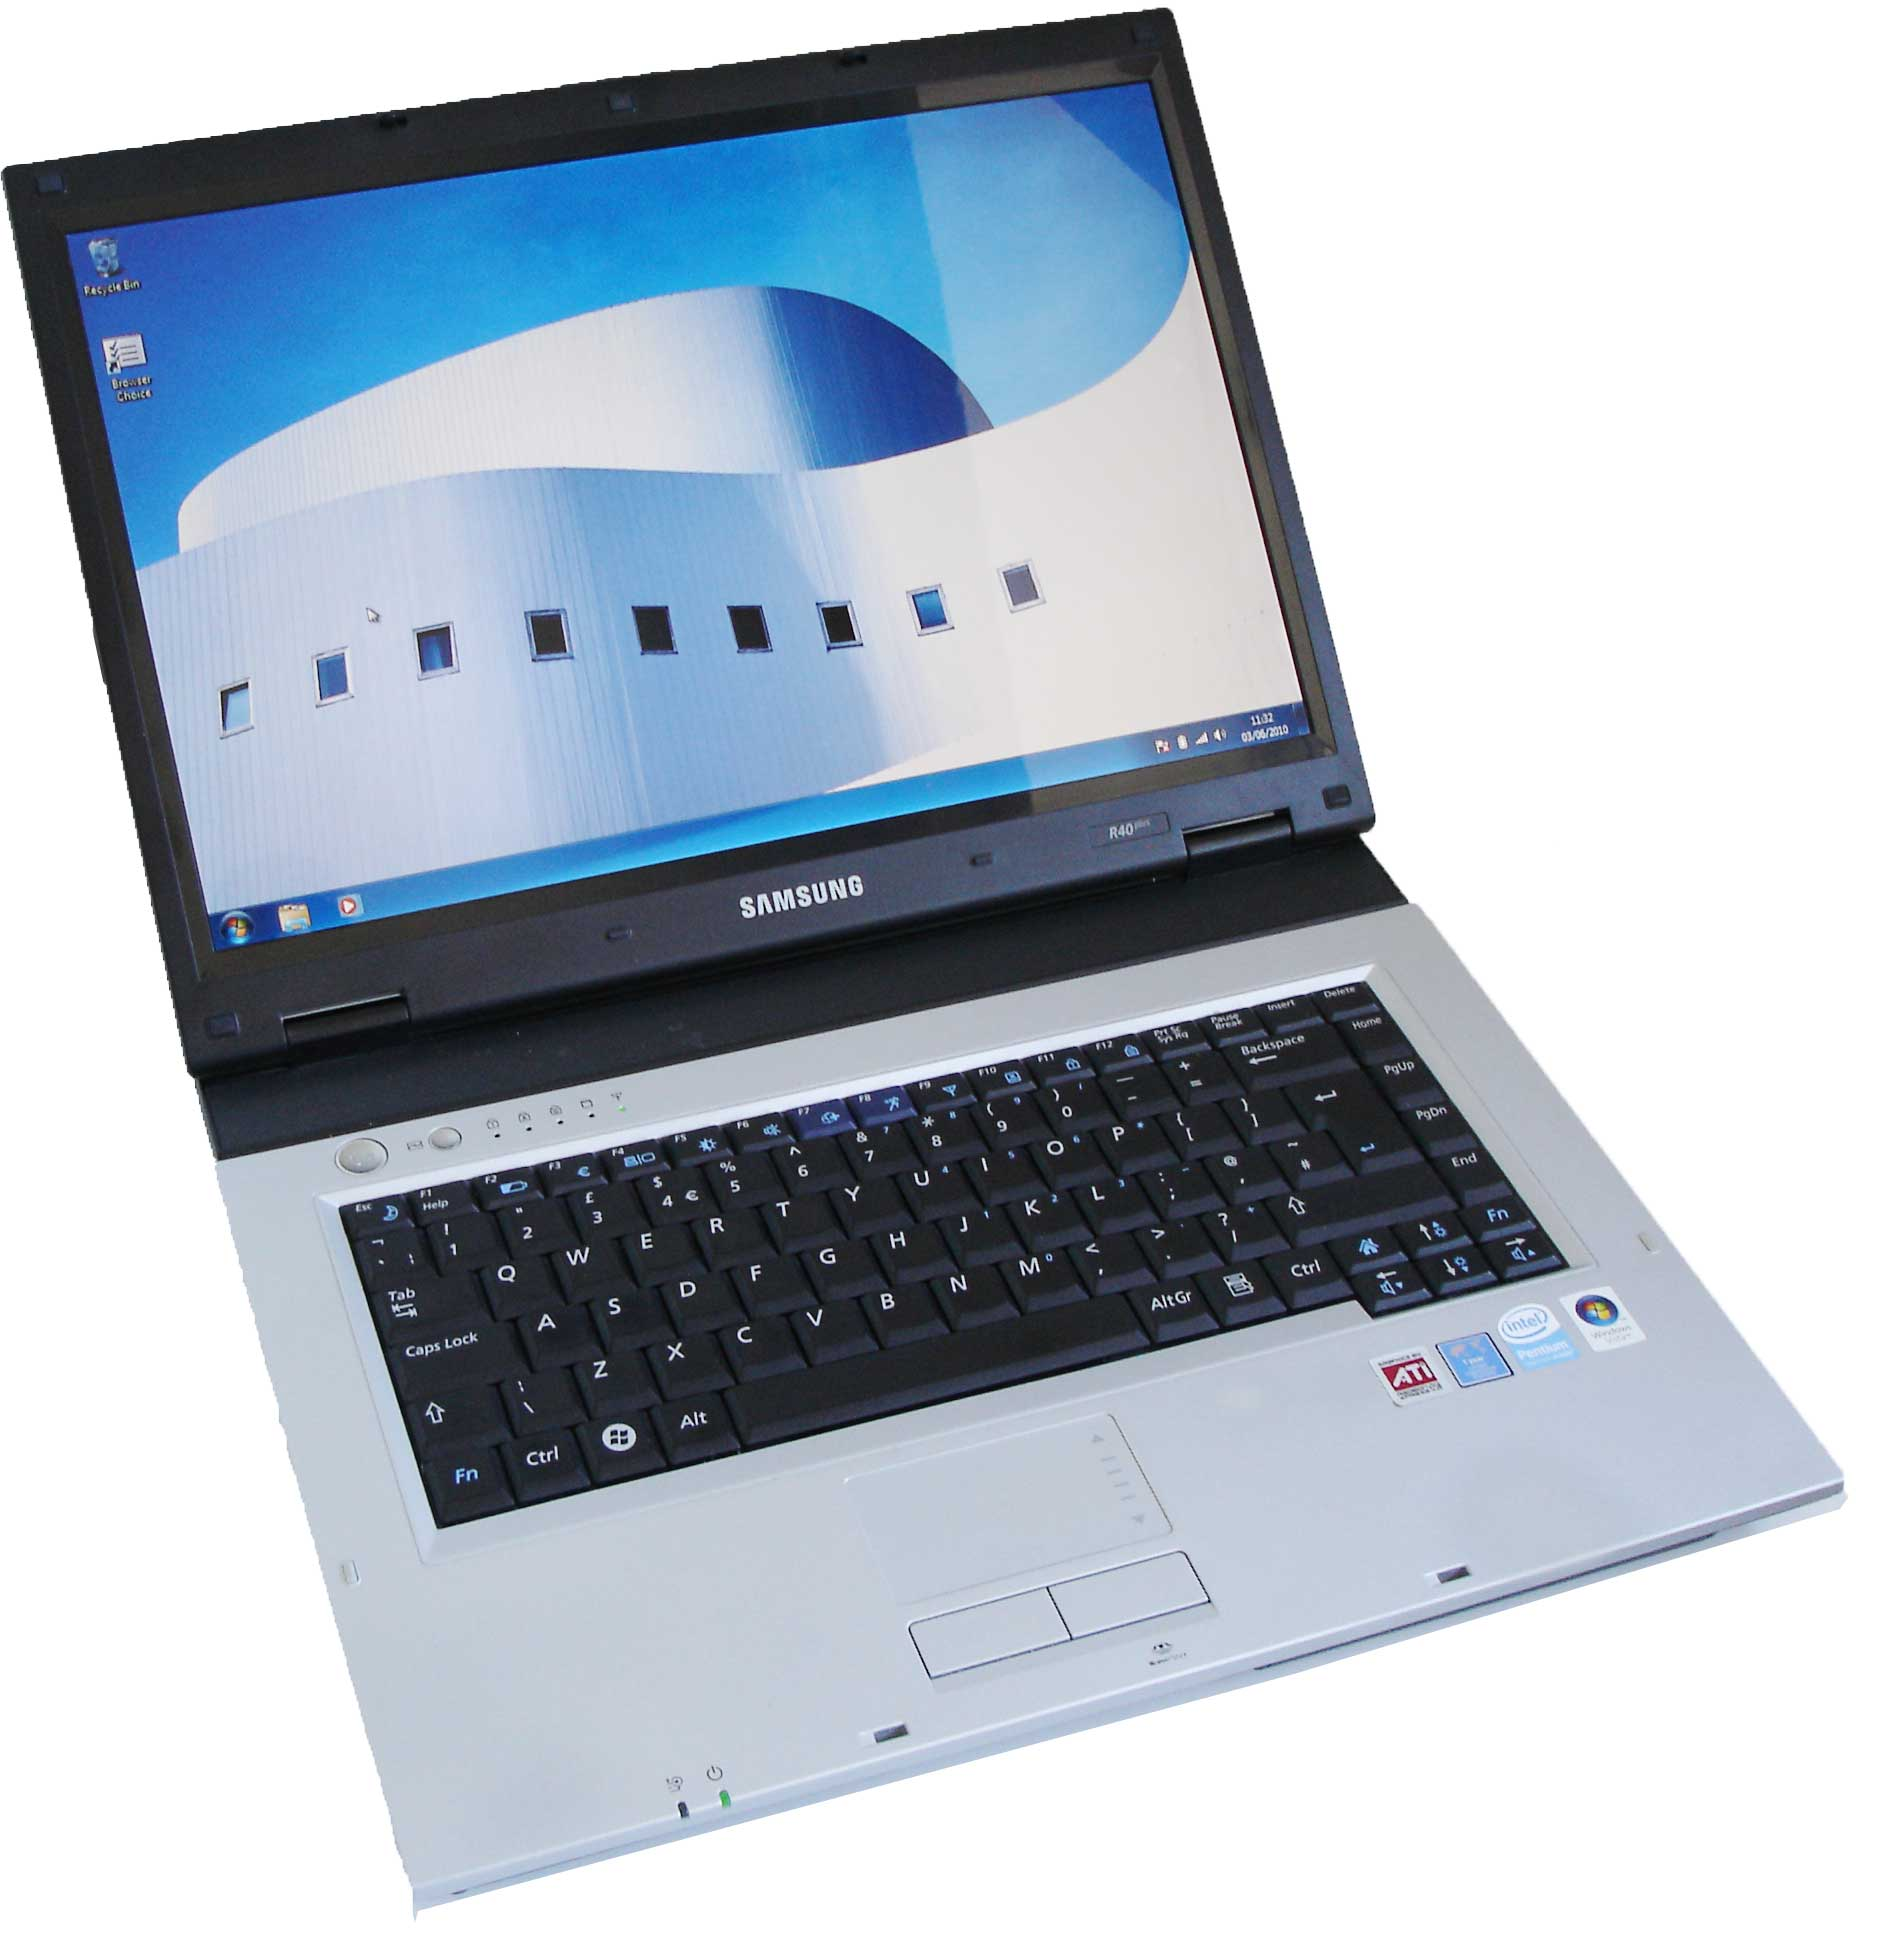 Samsung R40 Plus Laptop